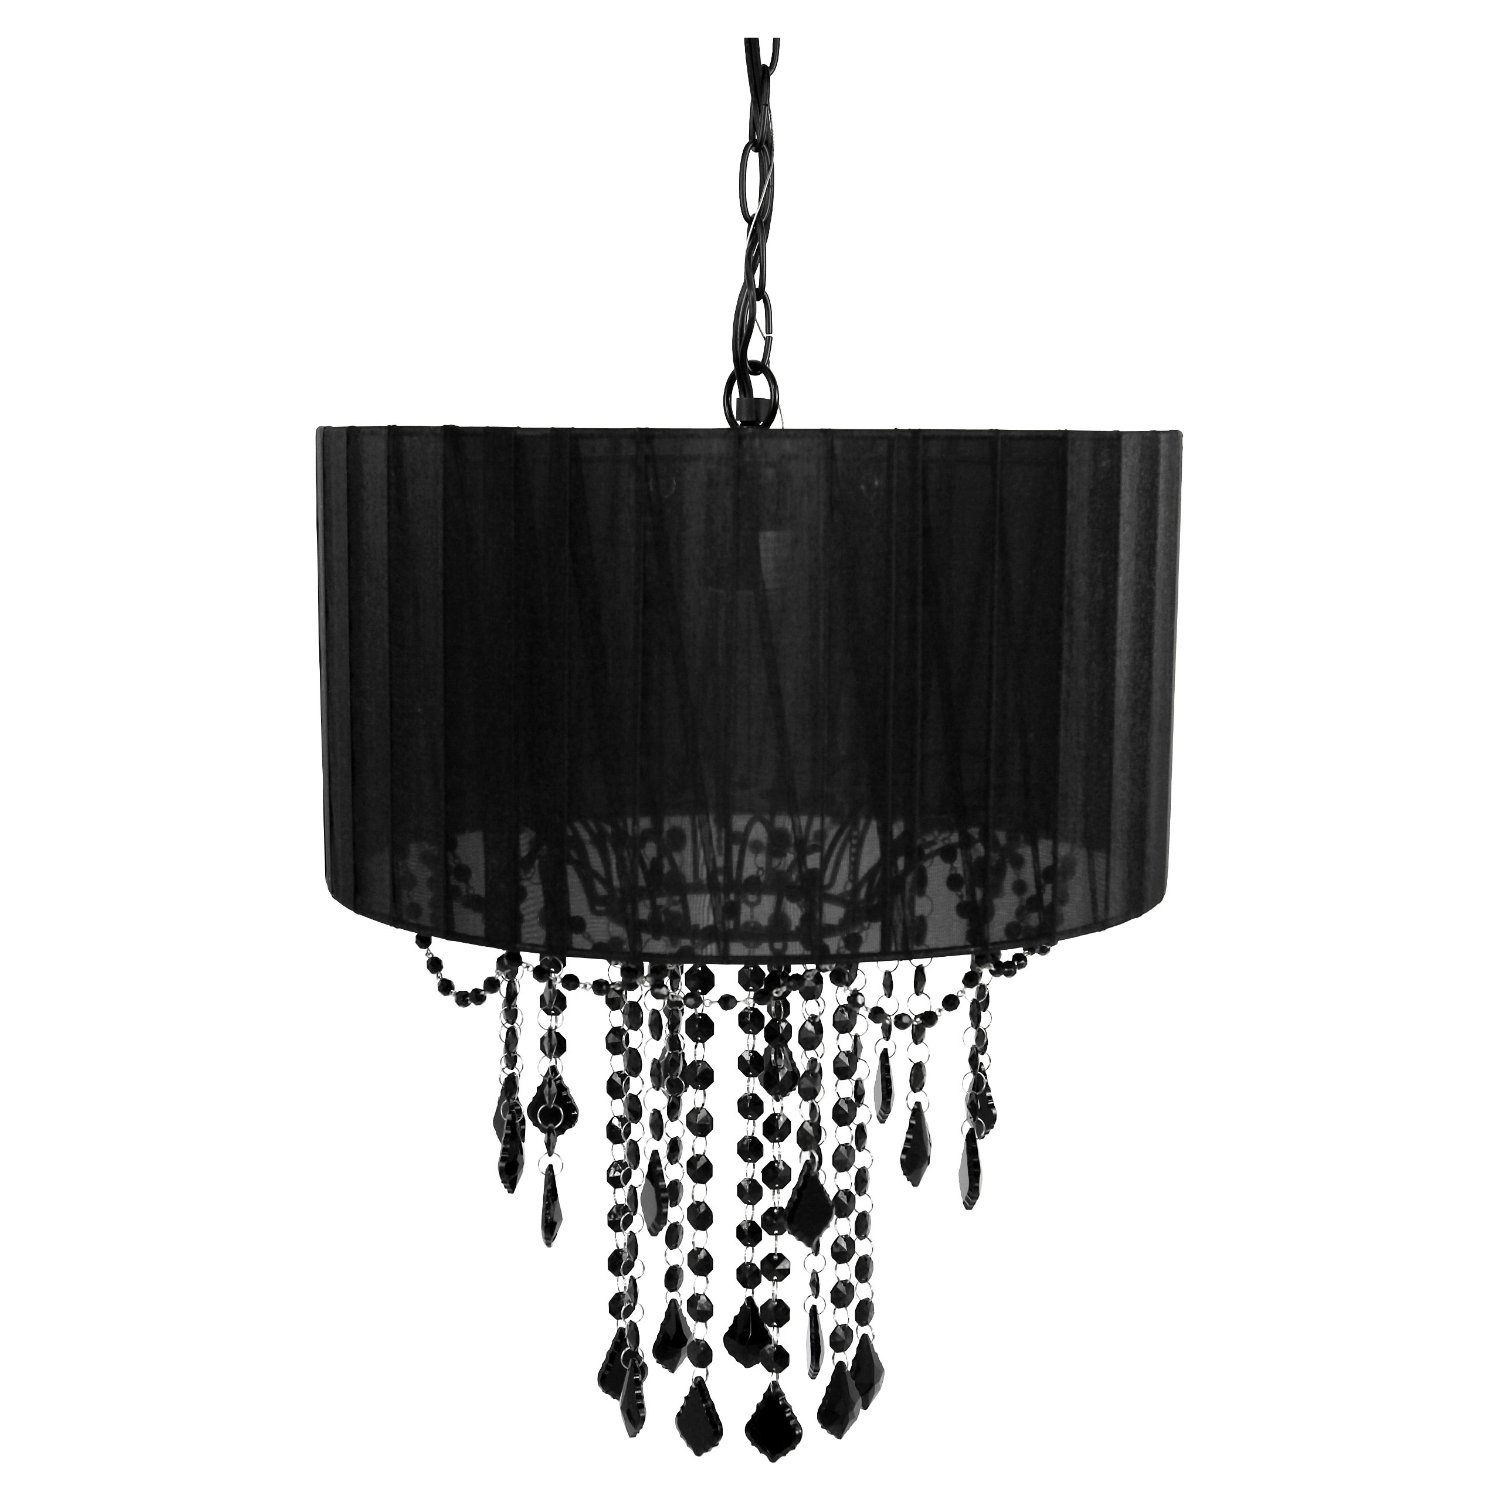 Stunning New Black Chandeliers Bedroom Lowes Courtagerivegauche Regarding Black Chandelier Bedroom (Image 14 of 15)